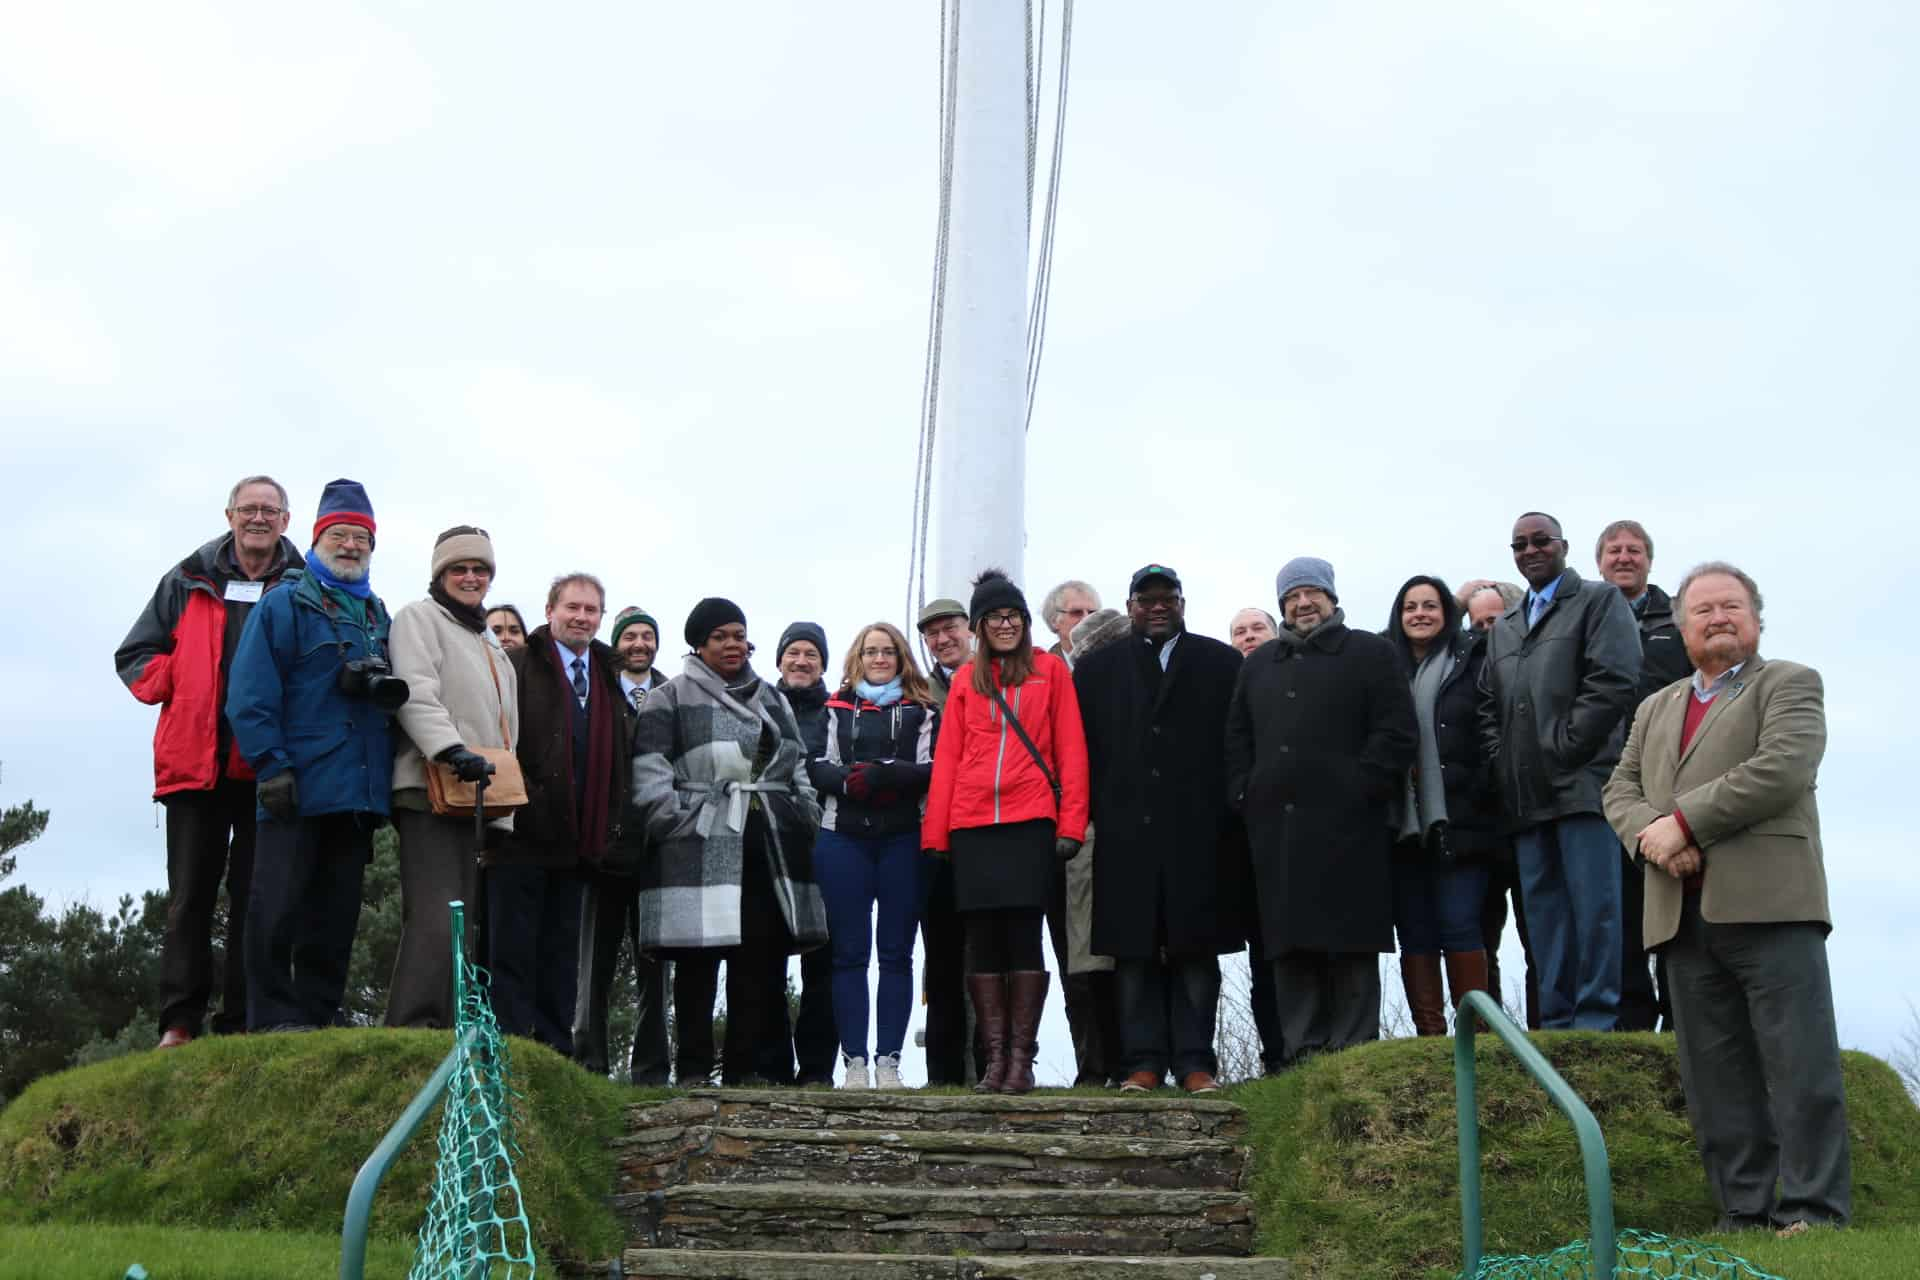 The final half-day site-visits included: a visit to the historical site of Tynwald, over 100 years old. Tynwald is the oldest continuous Parliament in the world; Copyright: Isle of Man Government.